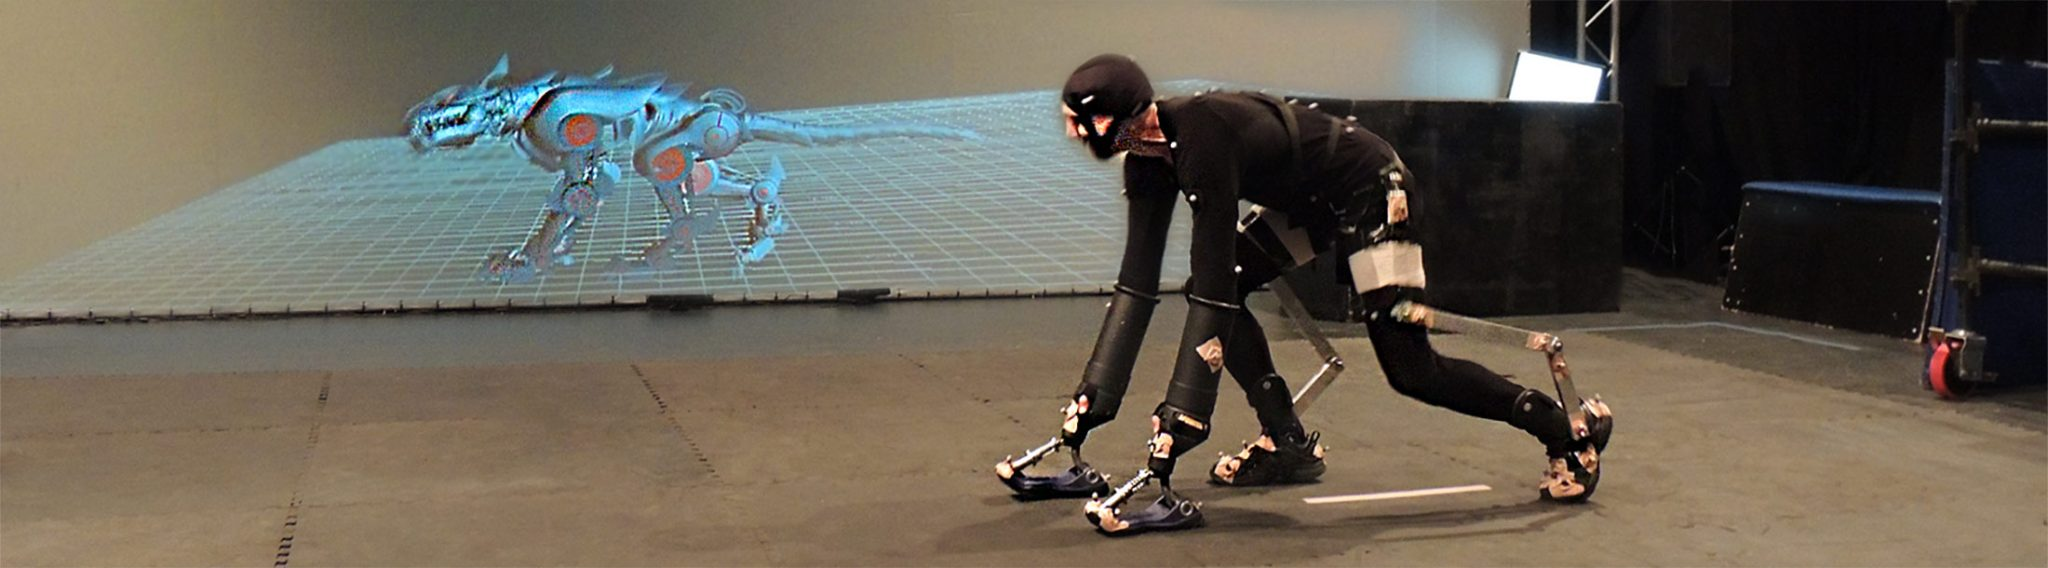 MOTION CAPTURE: When State-Of-The-Art becomes Art-Of-The-State